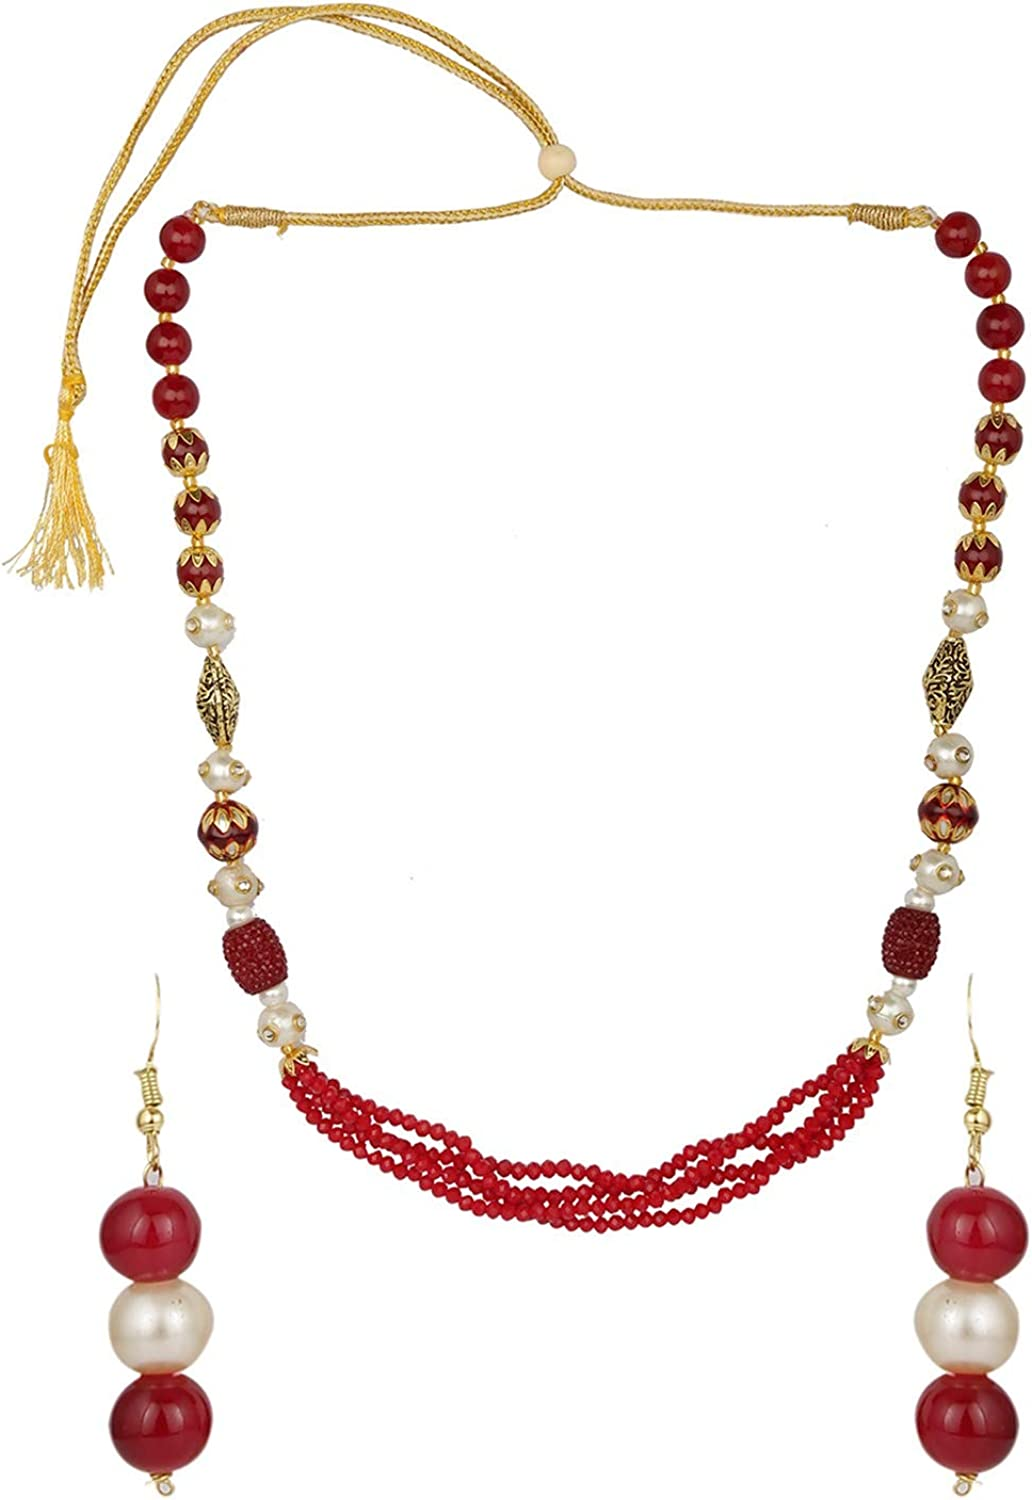 Efulgenz Boho Indian Bollywood Antique Bridal Pearl Denver Mall Easy-to-use Faux Beaded